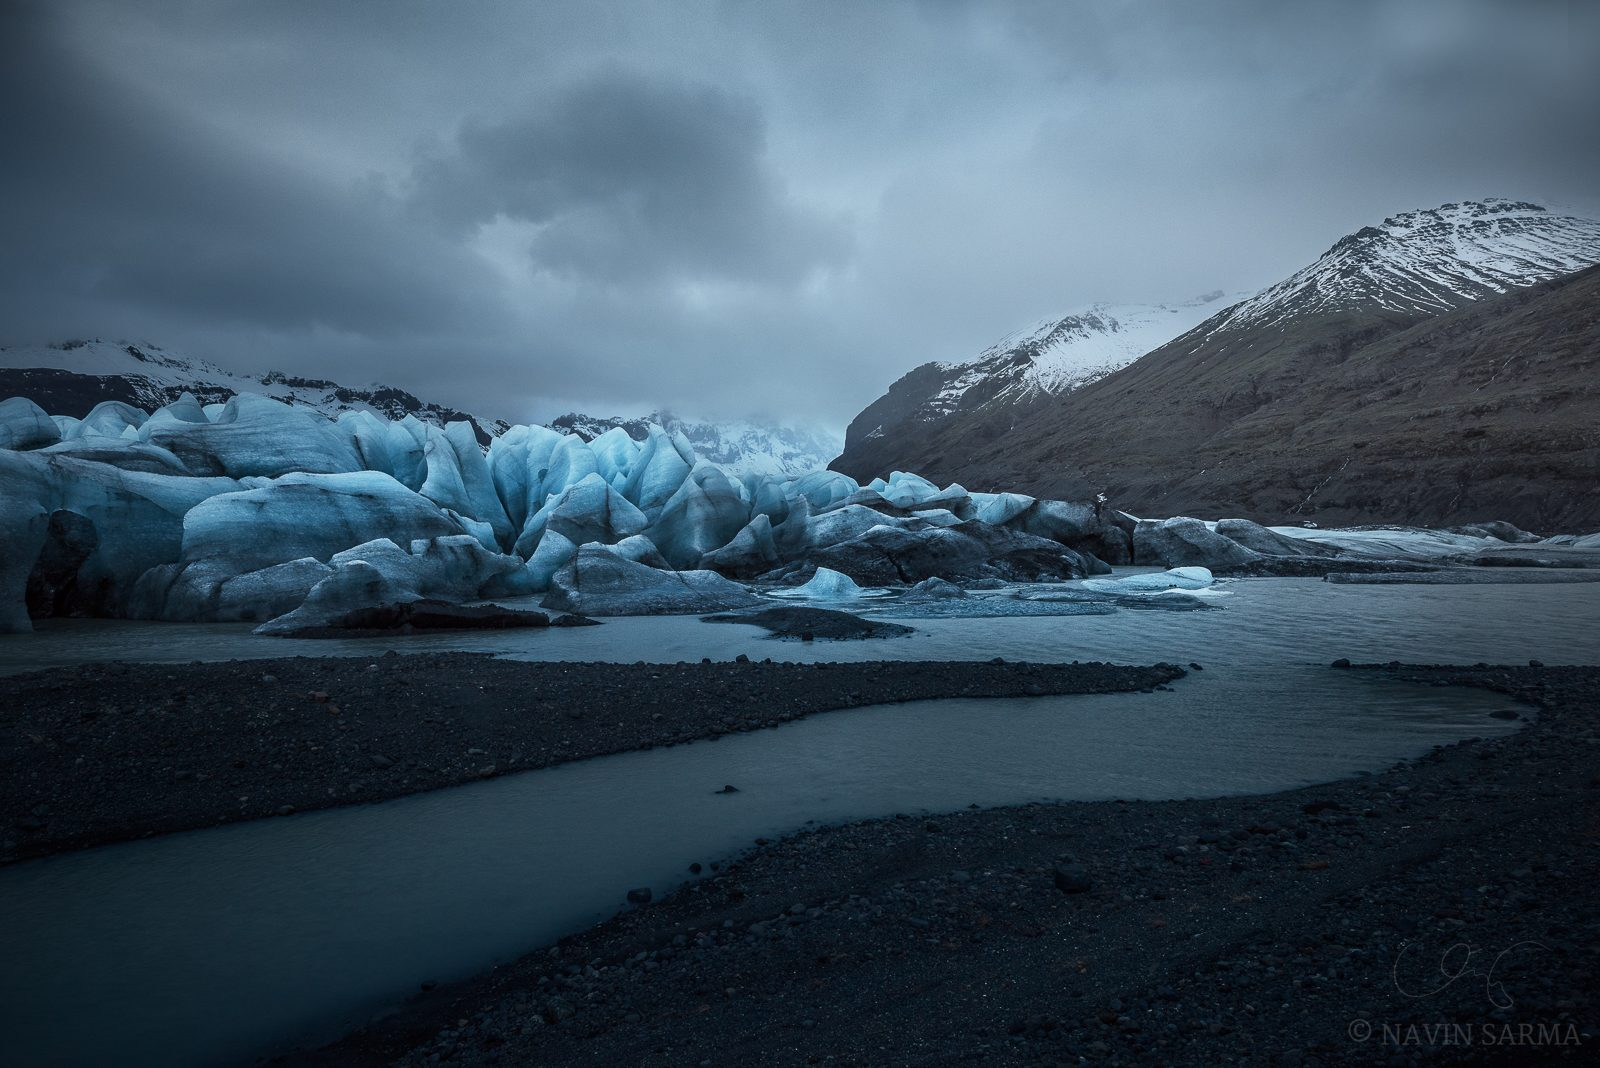 Edge of the Glacier - Glacial streams and massive shapes take form at the edge of one of the fingers of the Vatnajökull glacier